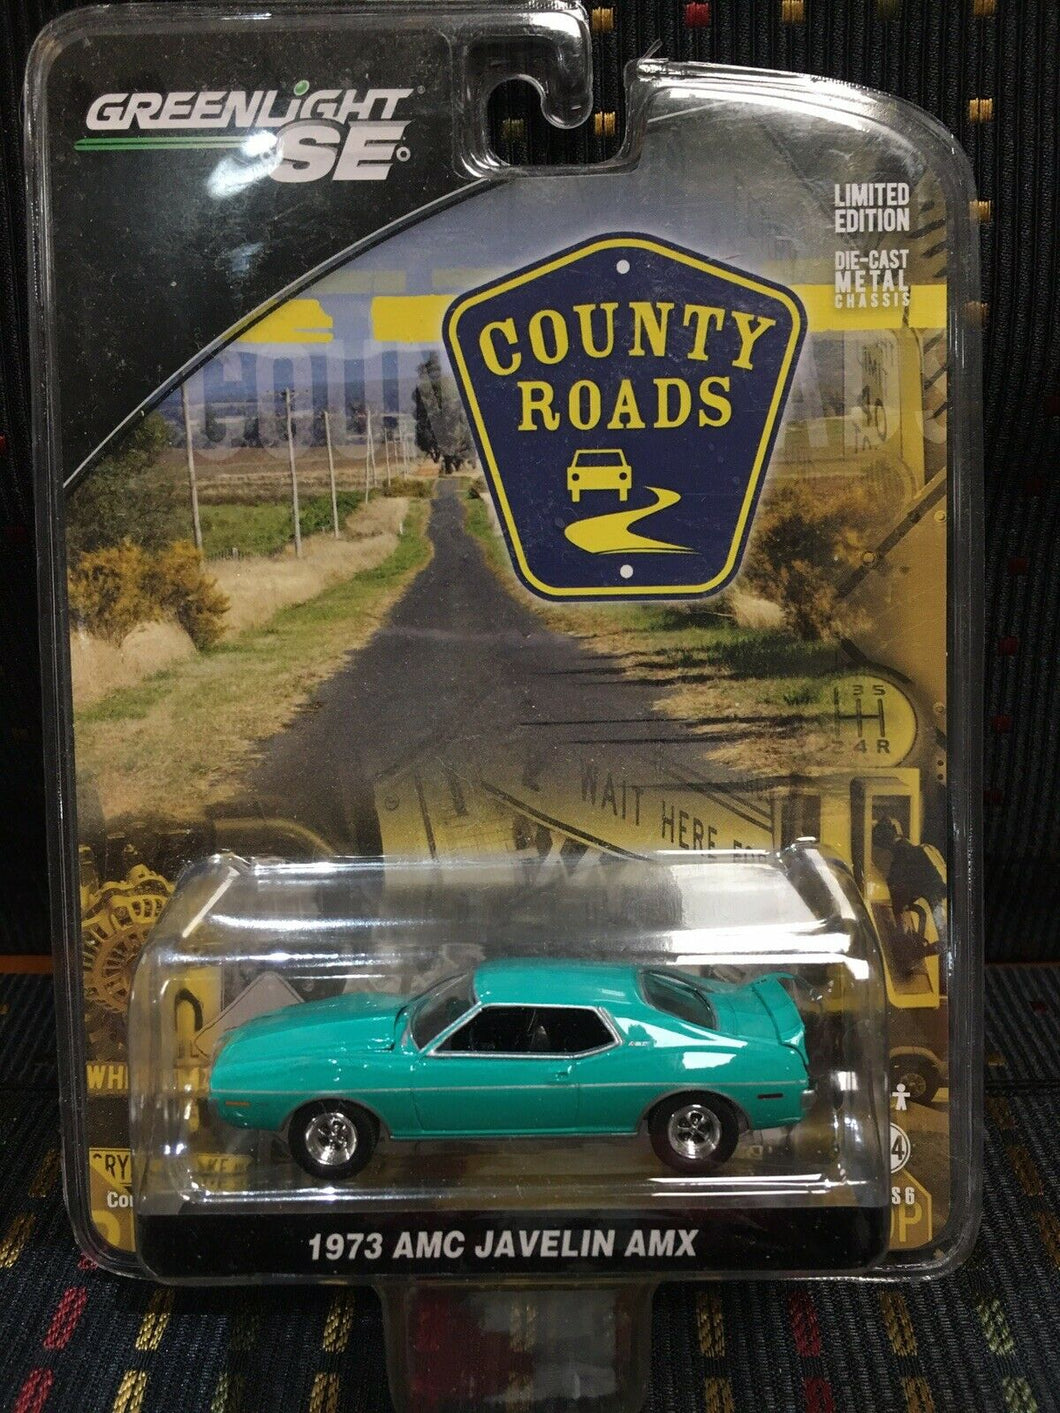 Greenlight County Roads AMC Javelin AMX Diecast 1/64 Scale Turquoise Green